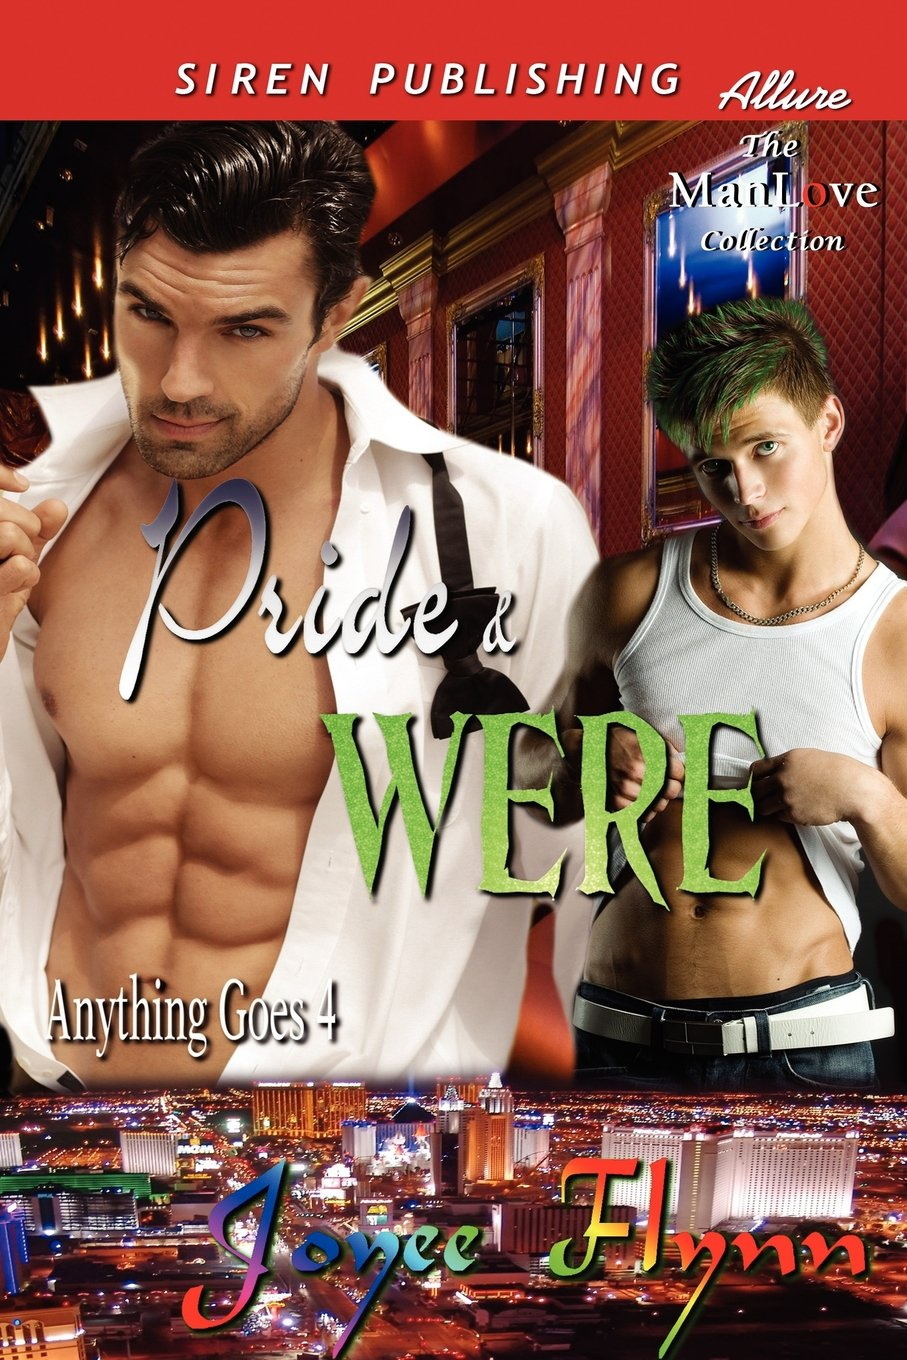 Pride & Were [Anything Goes 4] (Siren Publishing Allure Manlove) PDF